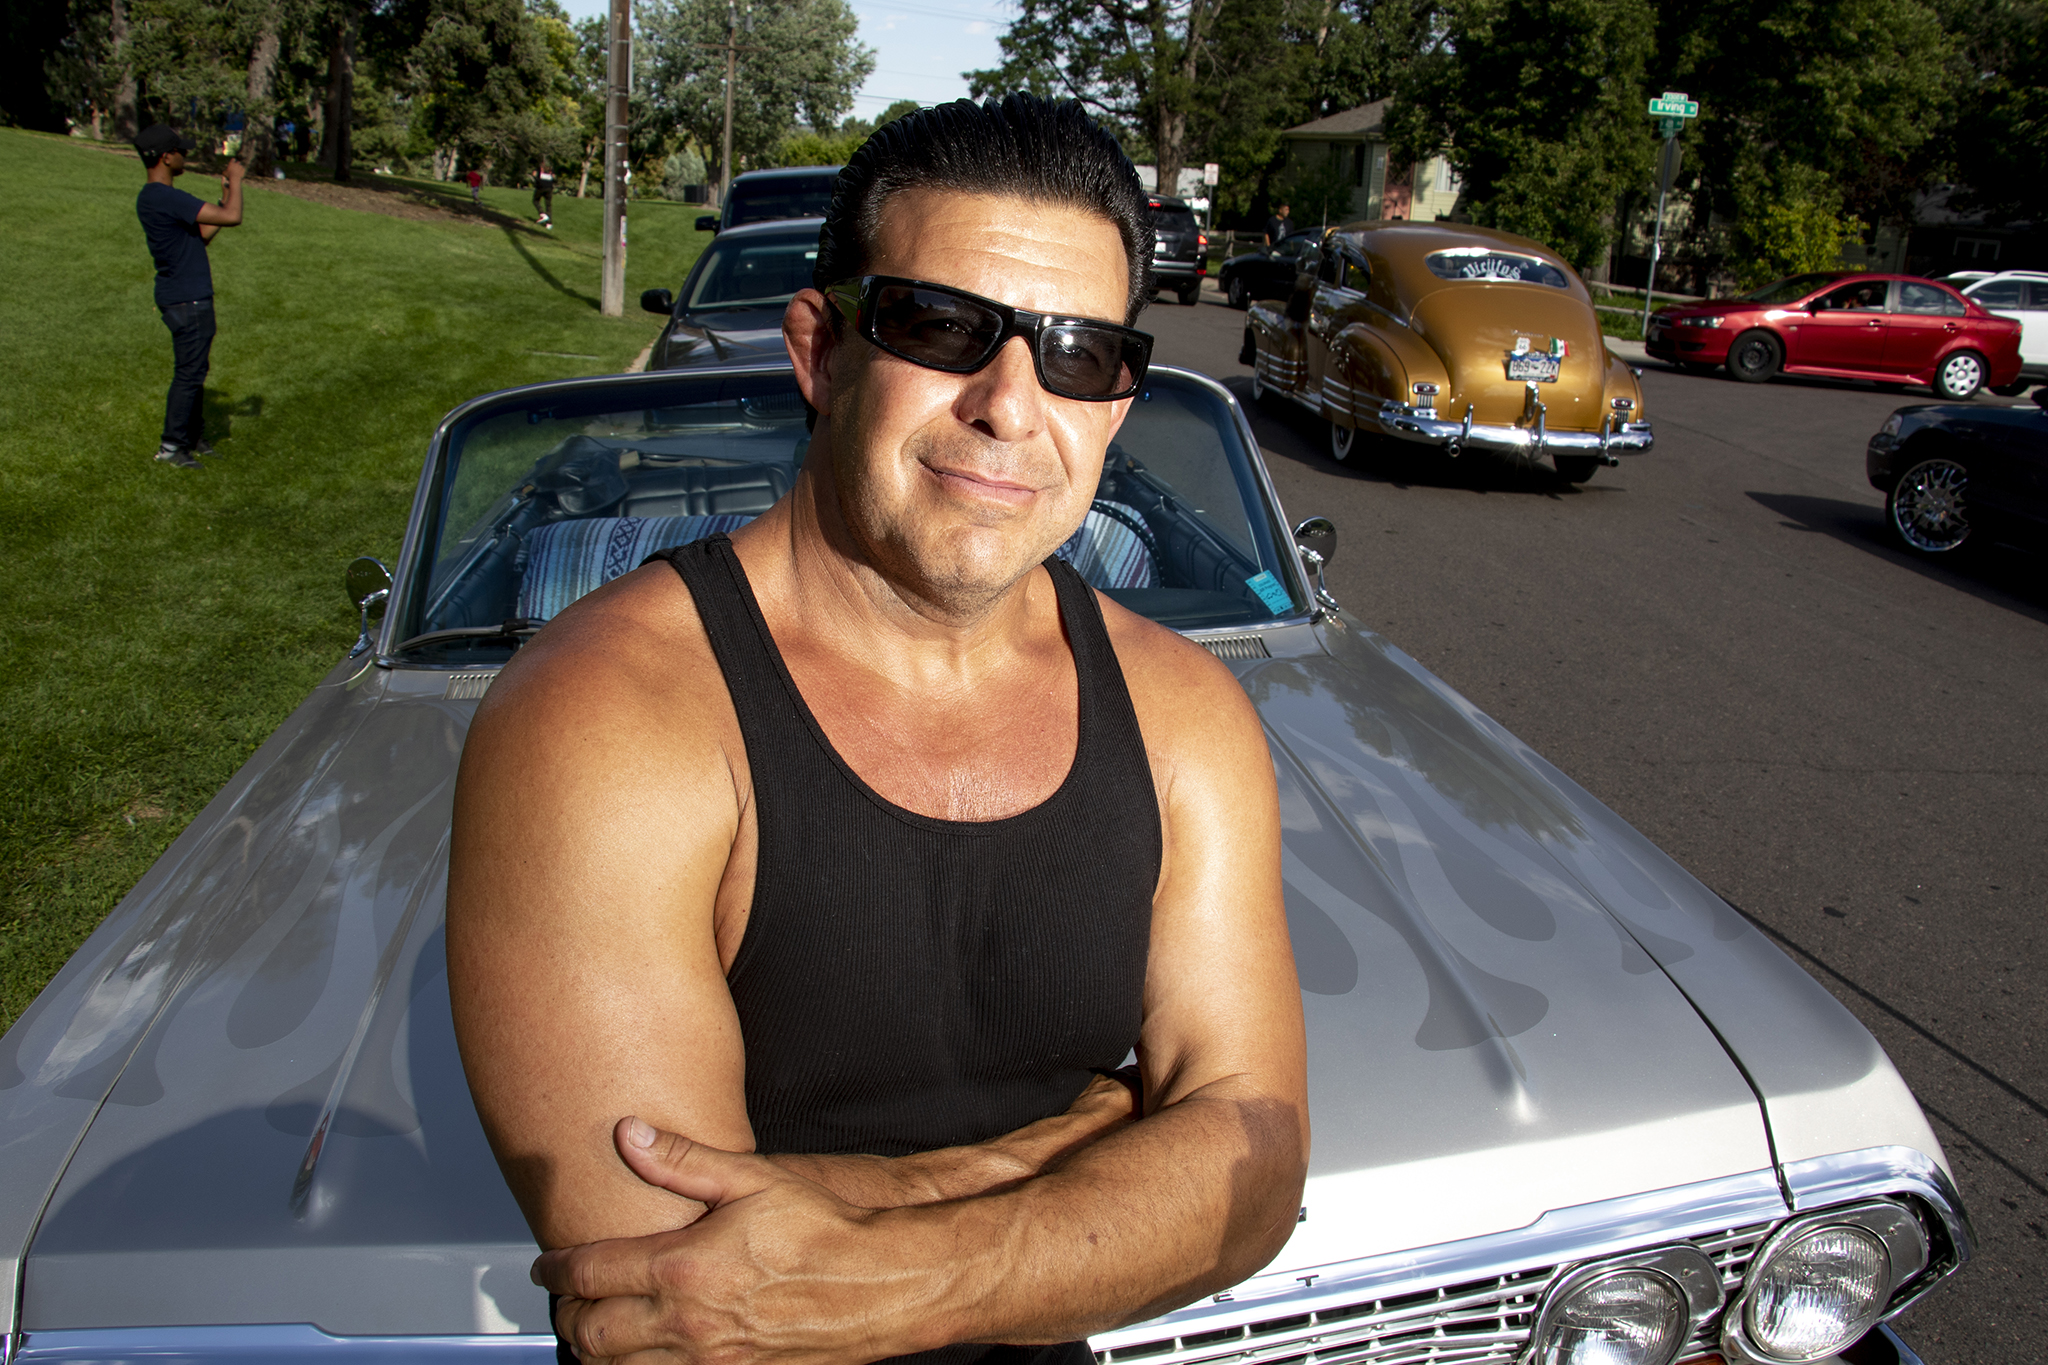 Officer Mark Garcia poses for a portrait with his low rifer at Barnum Park after a cruise down Federal Boulevard. Aug. 25, 2019.